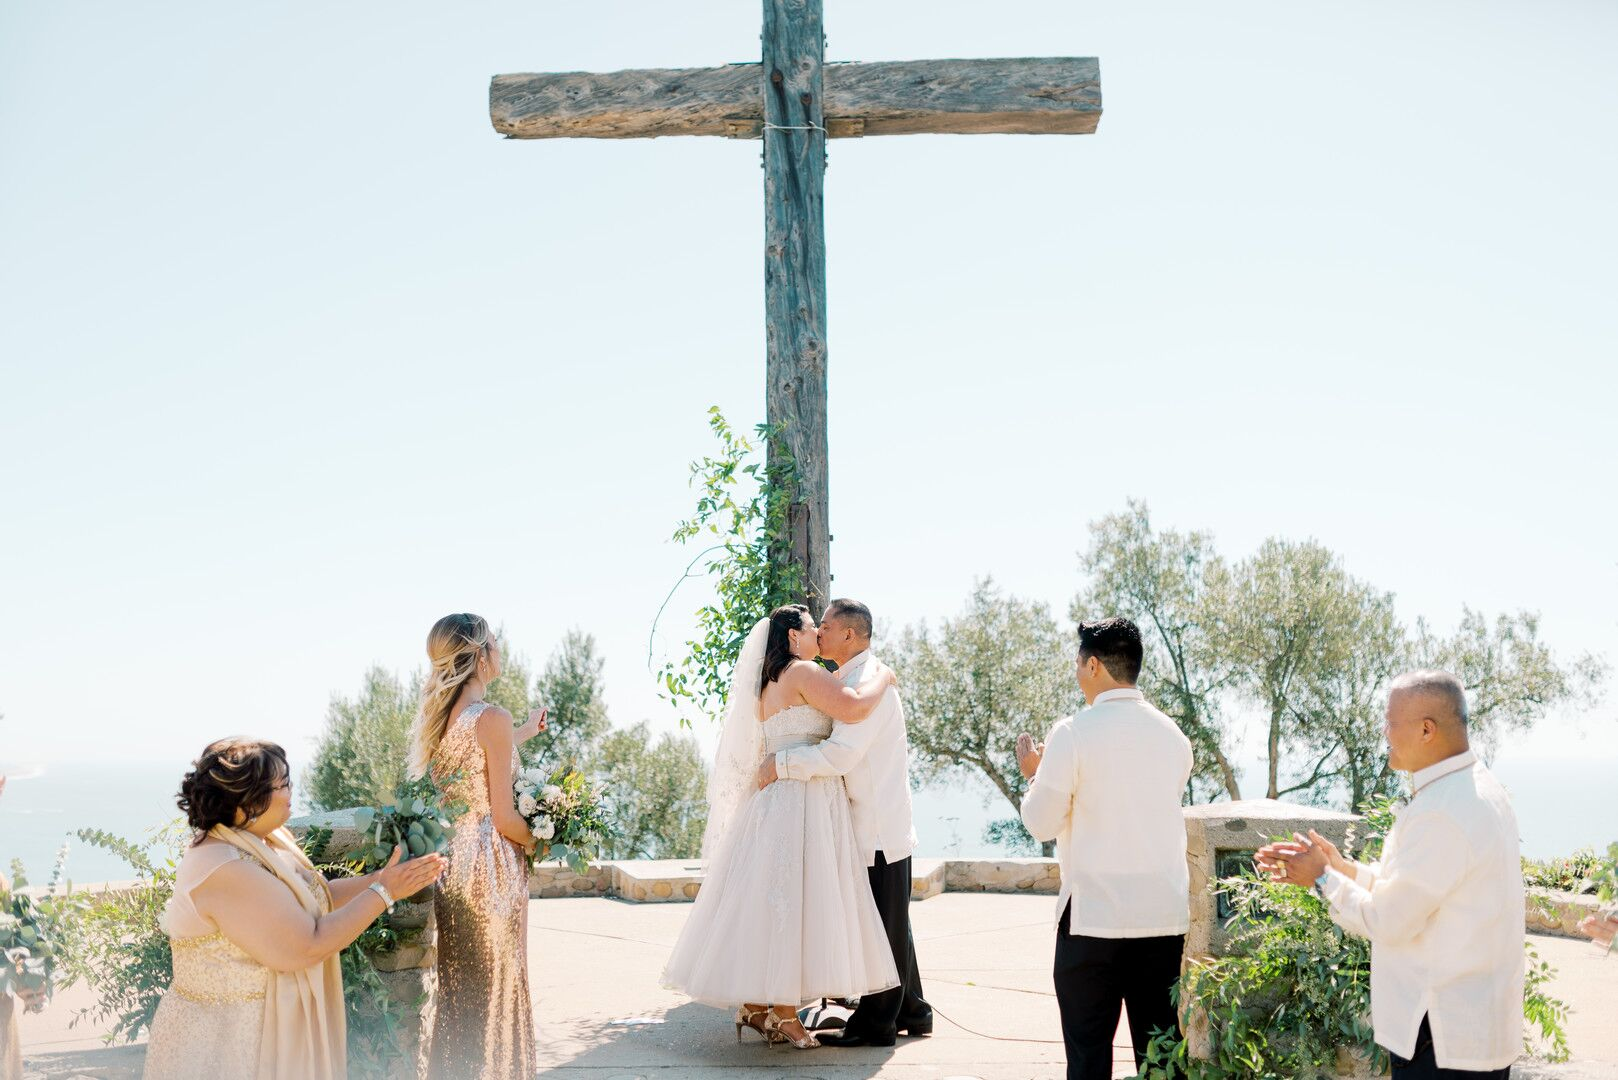 wwww.santabarbawedding.com | Planner: Vintage Heart Events | Ceremony Venue: Serra Cross Park | Photographer: Haley Richter Photography | Bride and Groom Kiss